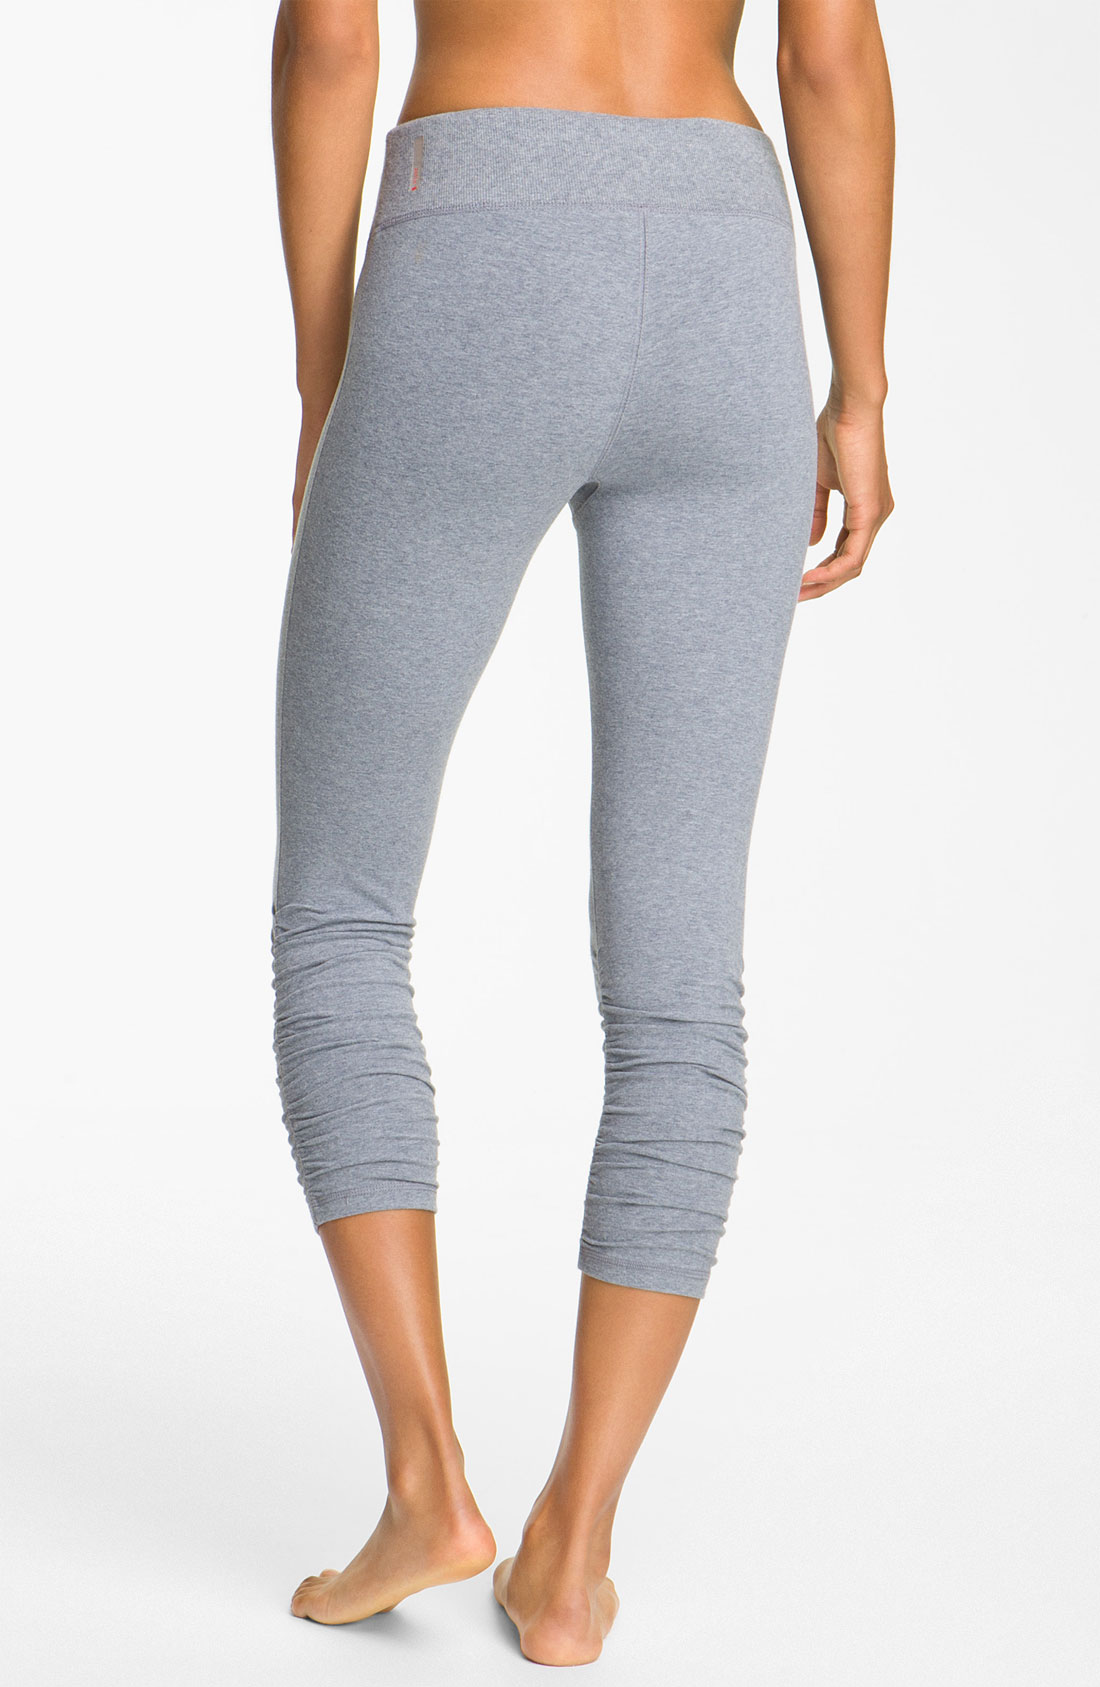 Ruched Capri Leggings